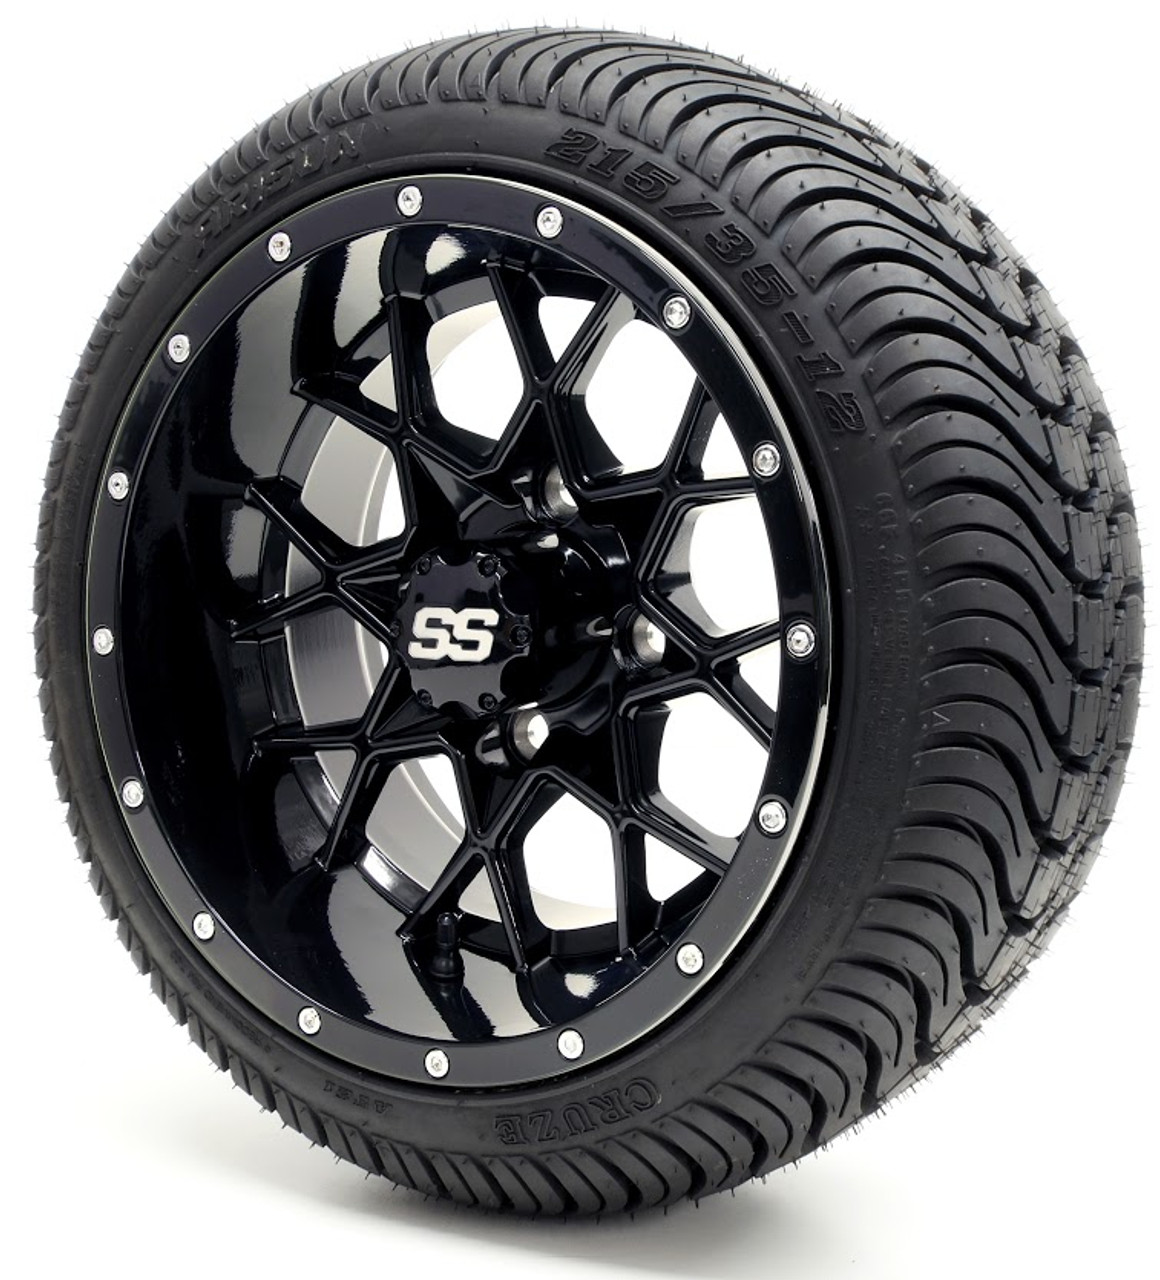 GTW Vortex SS Gloss Black Wheels with Low ProTire Options ...